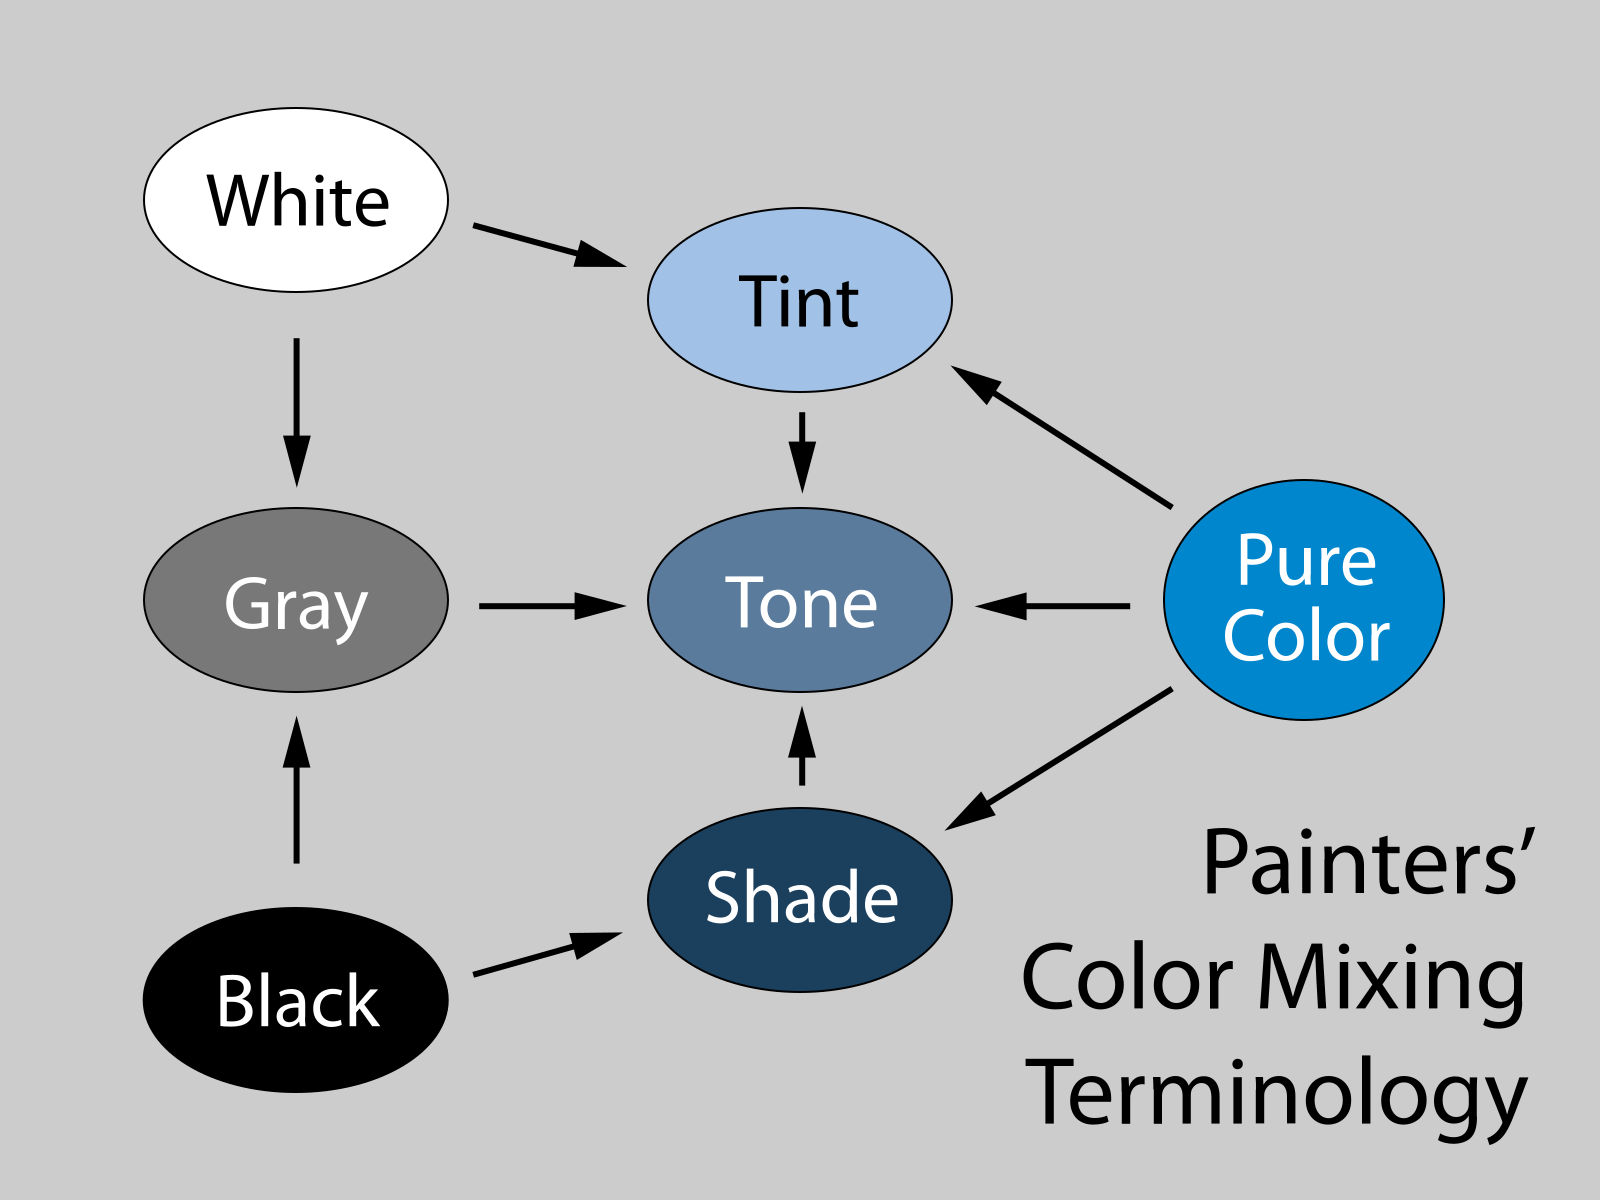 Painters color mixing terminology chart